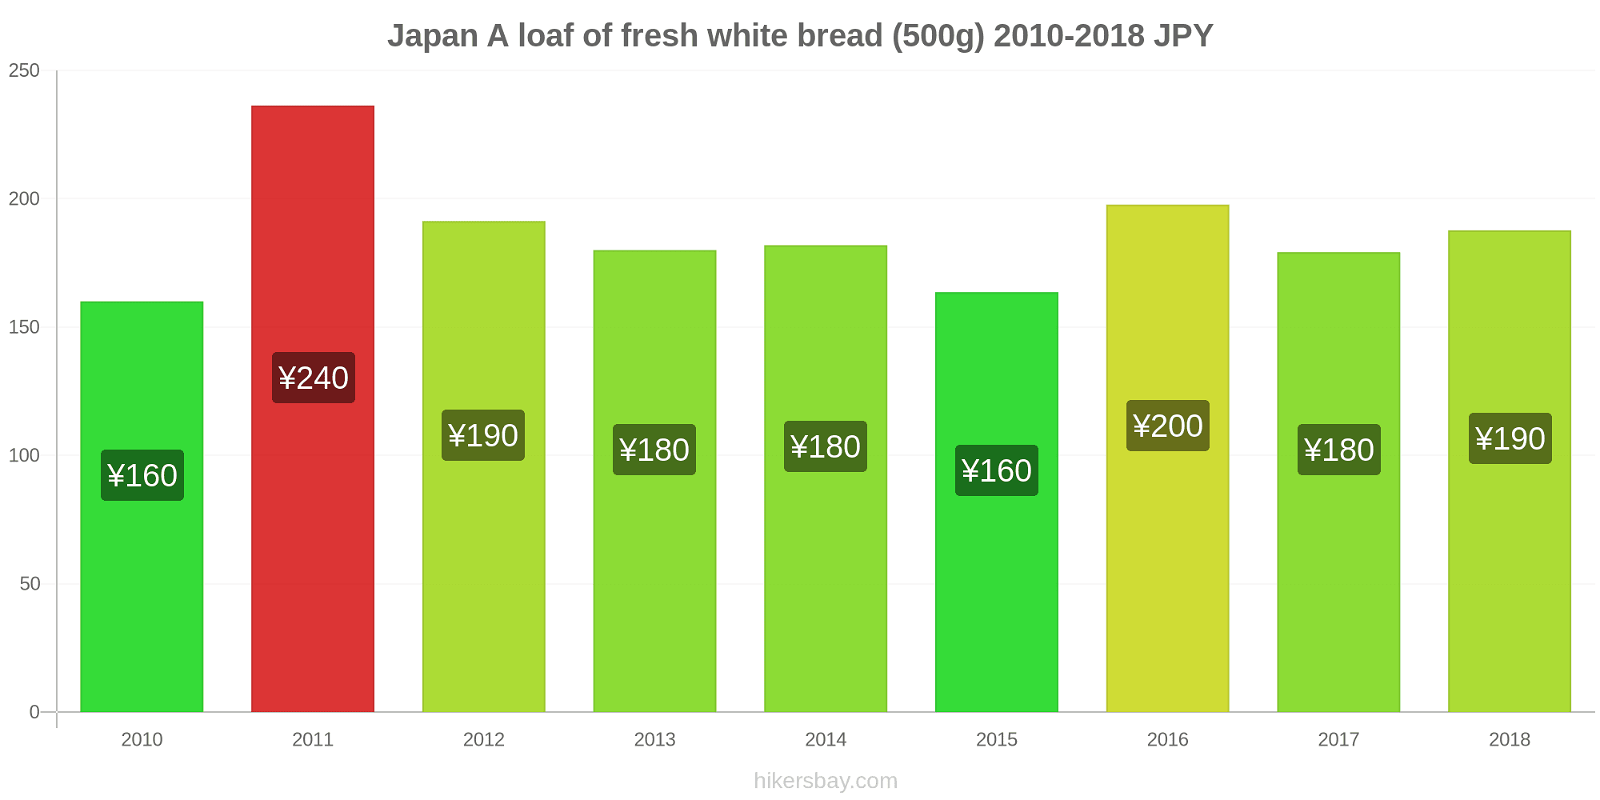 Japan price changes A loaf of fresh white bread (500g) hikersbay.com